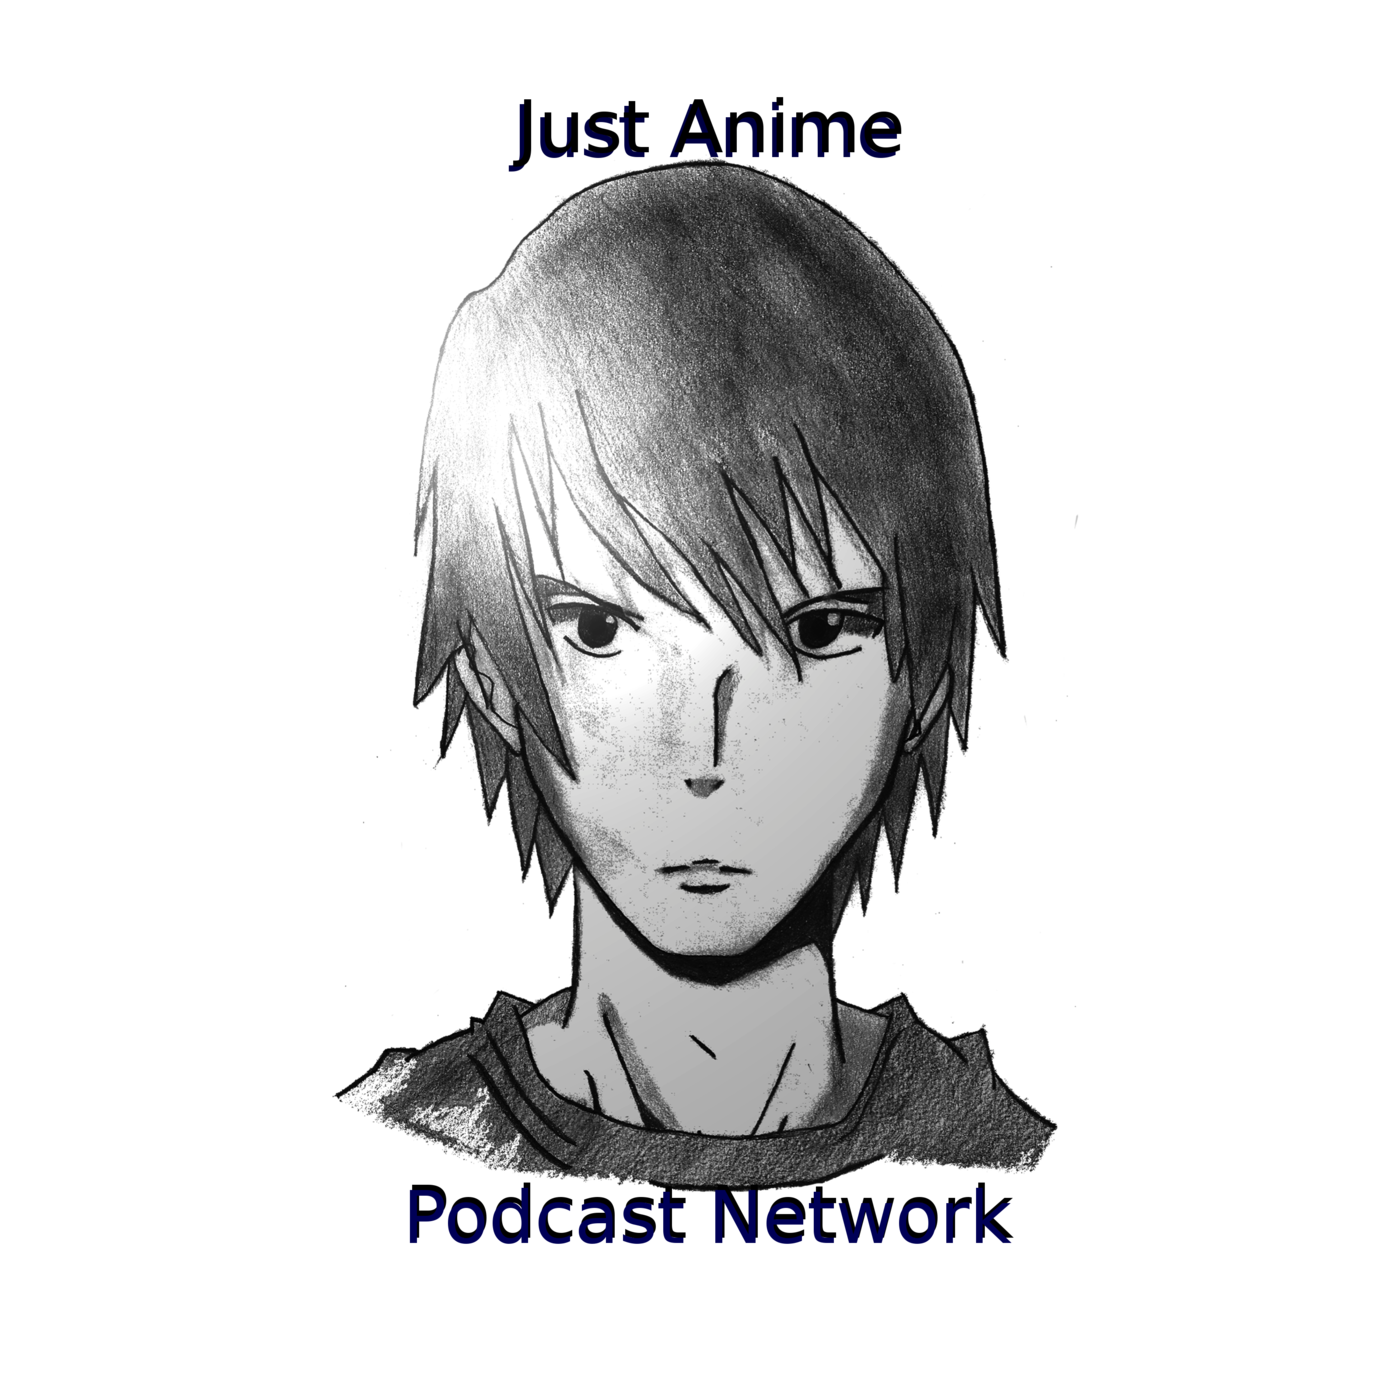 Just Anime Podcast Network